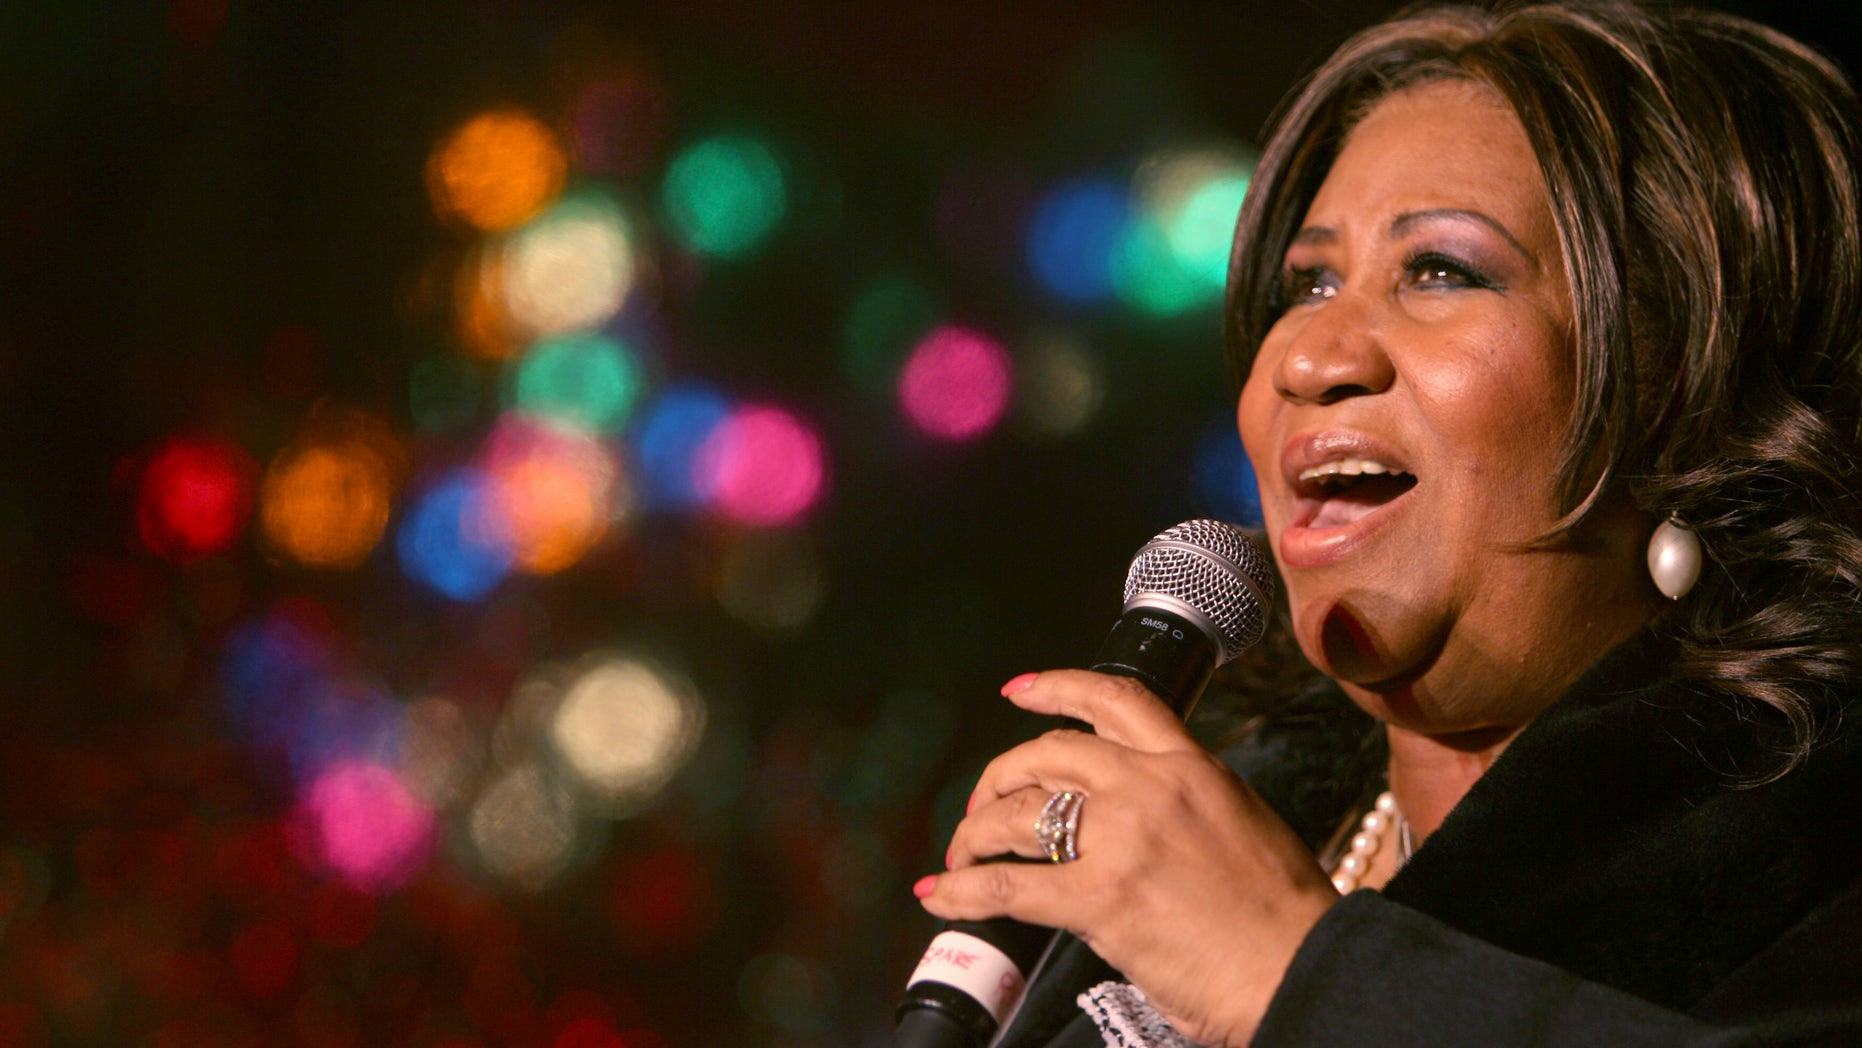 FILE - In this Dec. 4, 2008 file photo, Aretha Franklin performs during the 85th annual Christmas tree lighting at the New York Stock Exchange in New York.